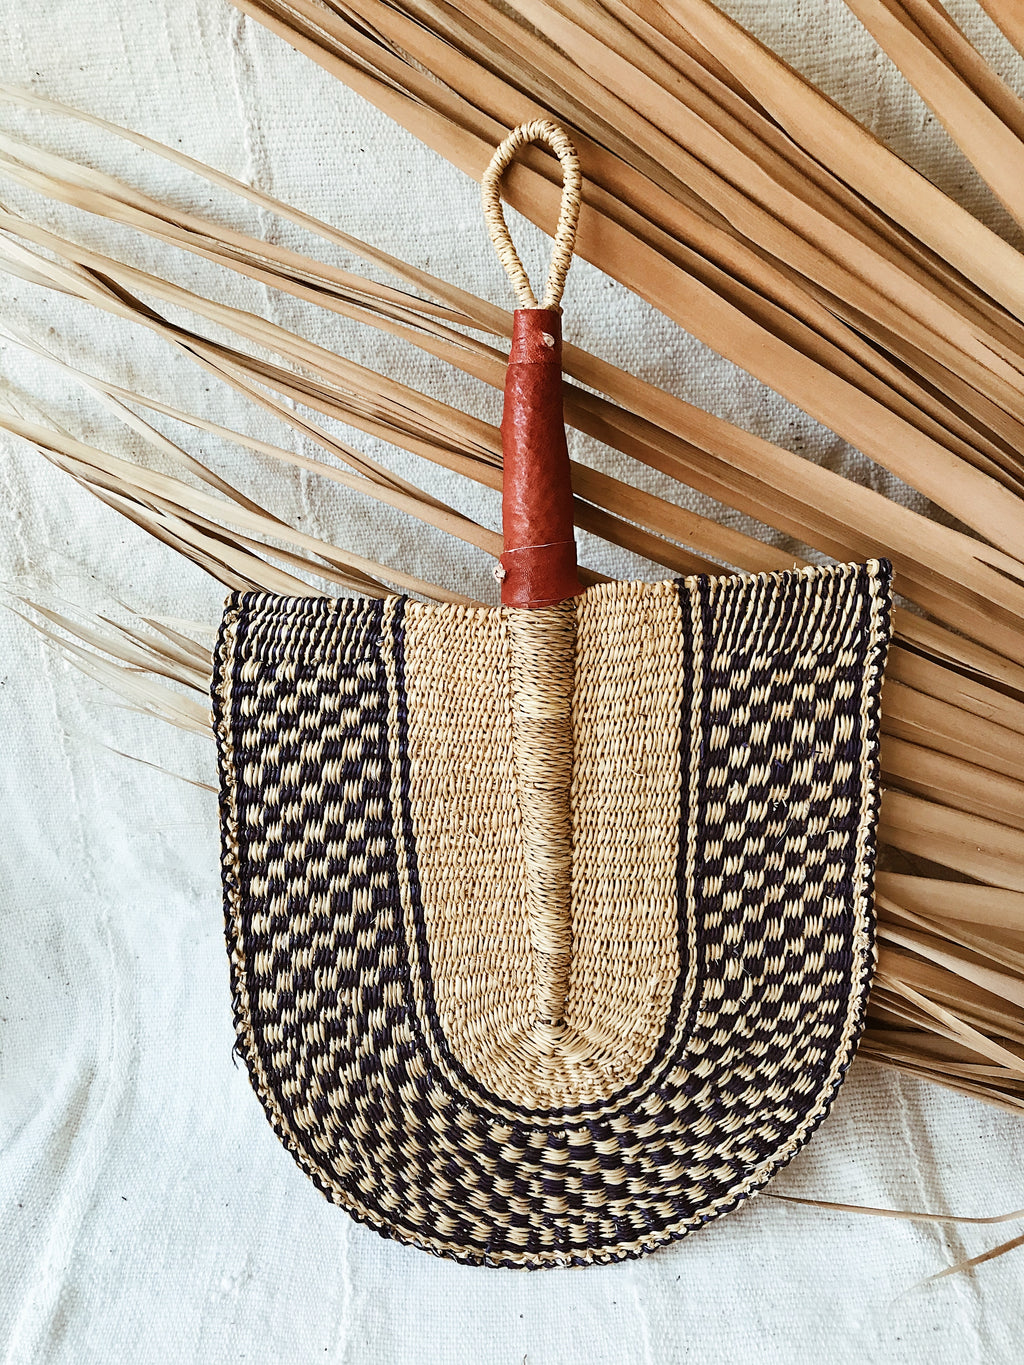 Savanna Wicker Fan // Natural + Navy #13